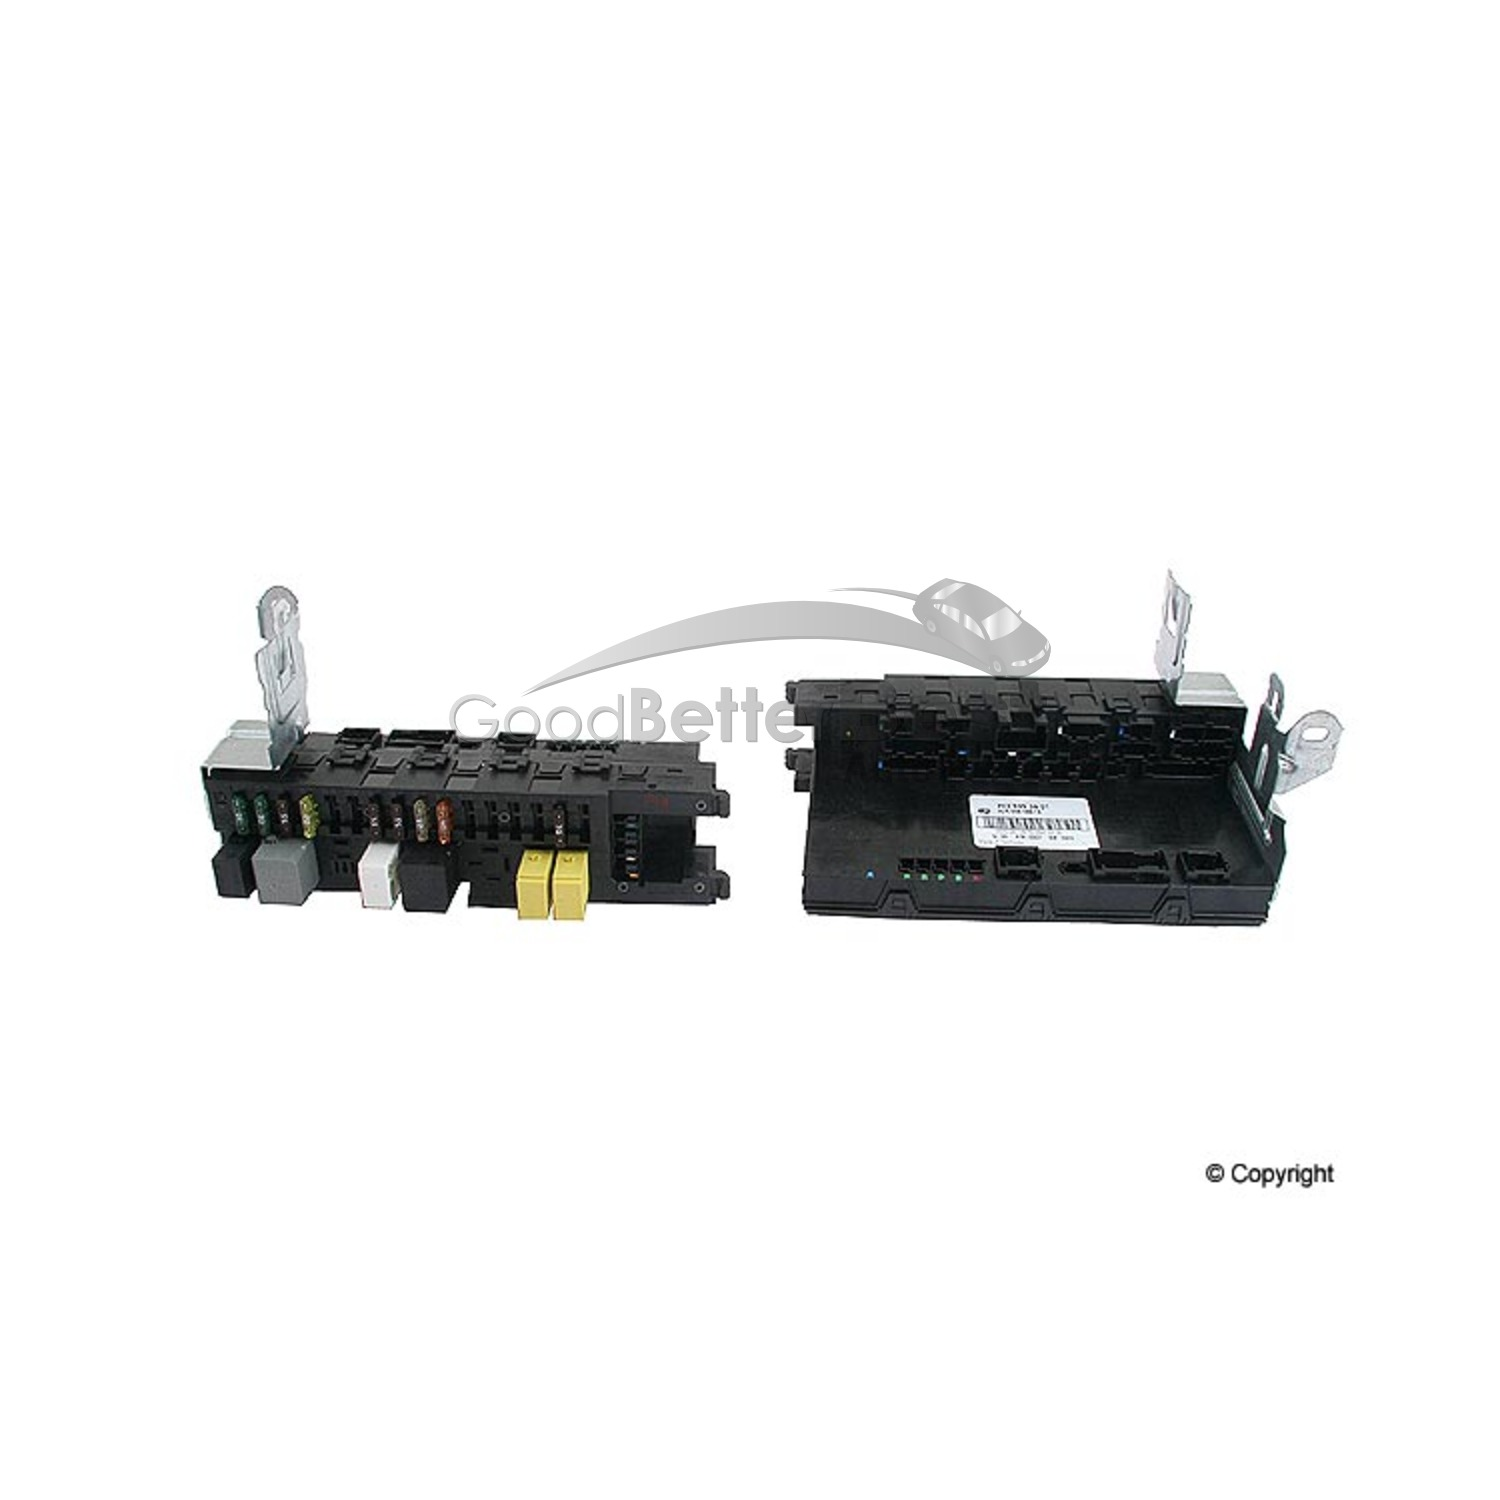 One New Genuine Fuse Box 2035454701 2035453401 for Mercedes MB